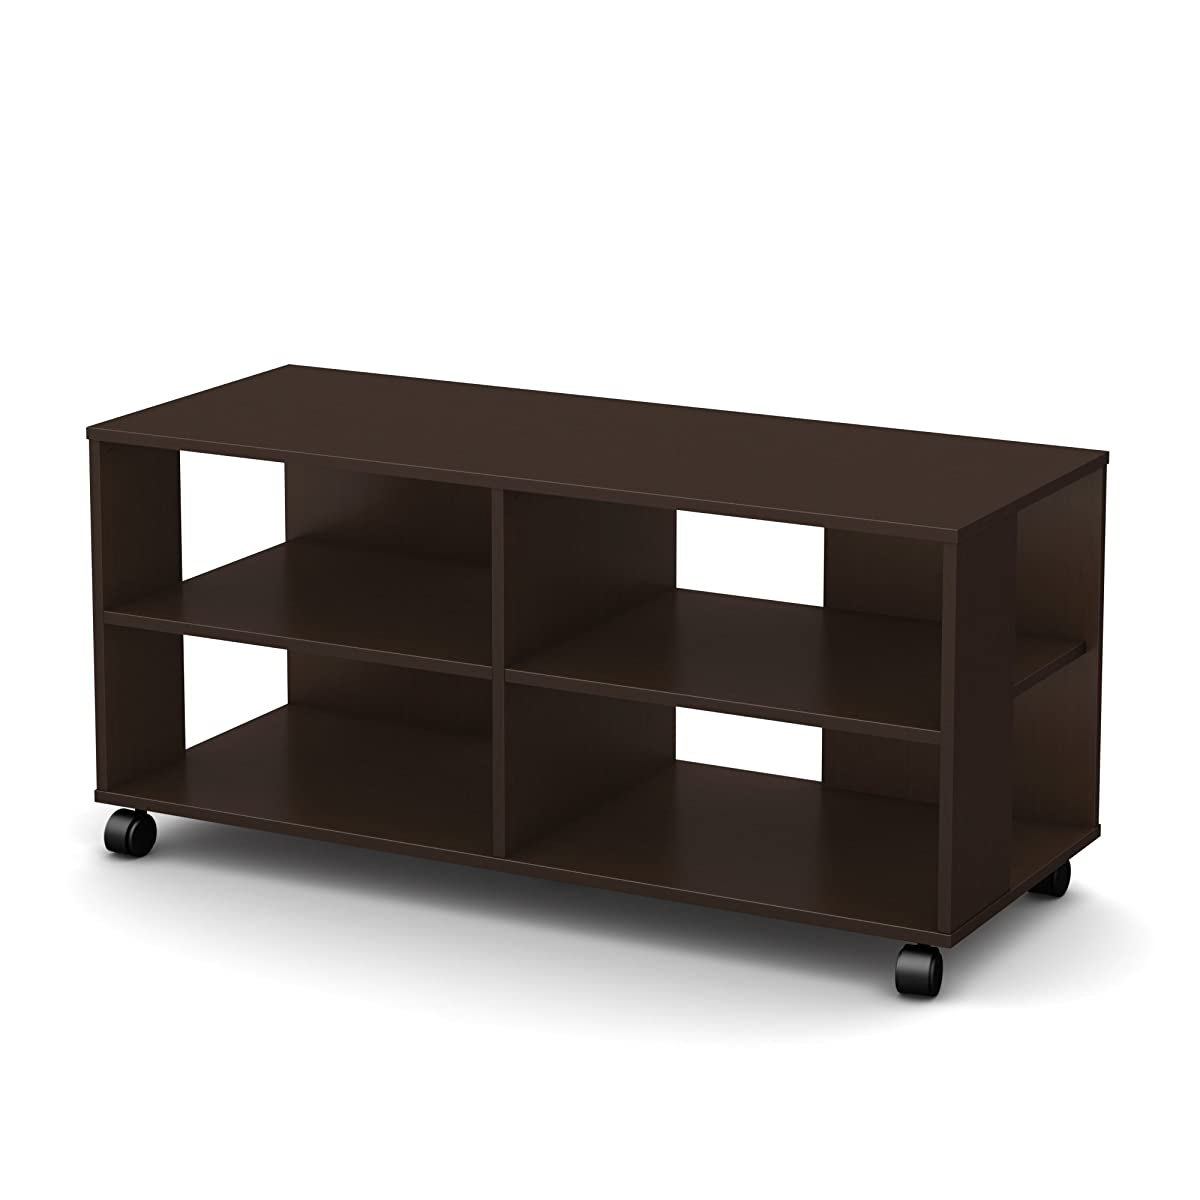 Tv Stand With Wheels Jambory Tv Stand Storage Unit On Casters Fits Tvs Up To